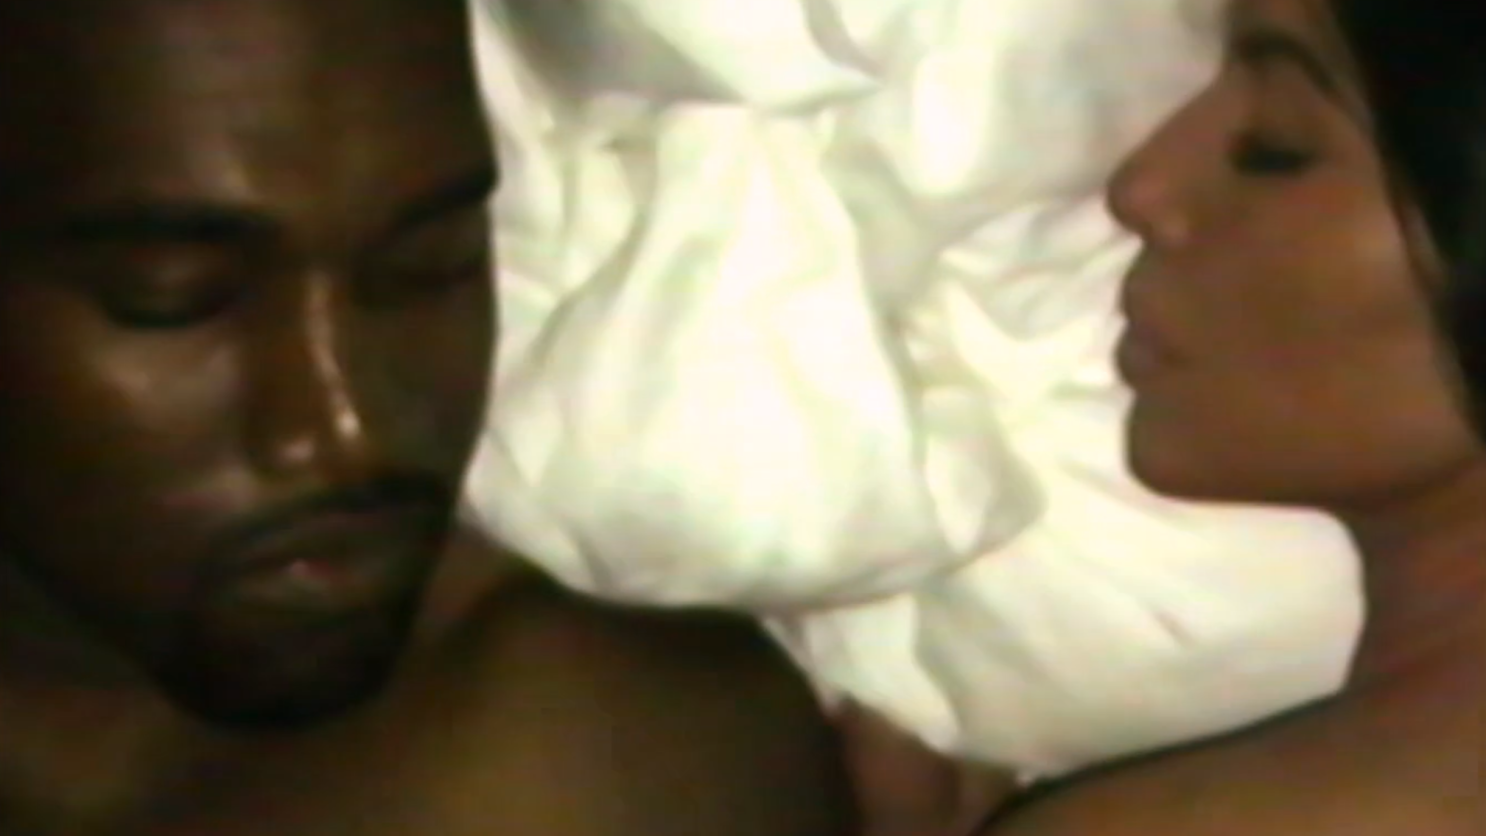 Hell Baby Nude Scene kanye west unveils risque 'famous' video featuring naked